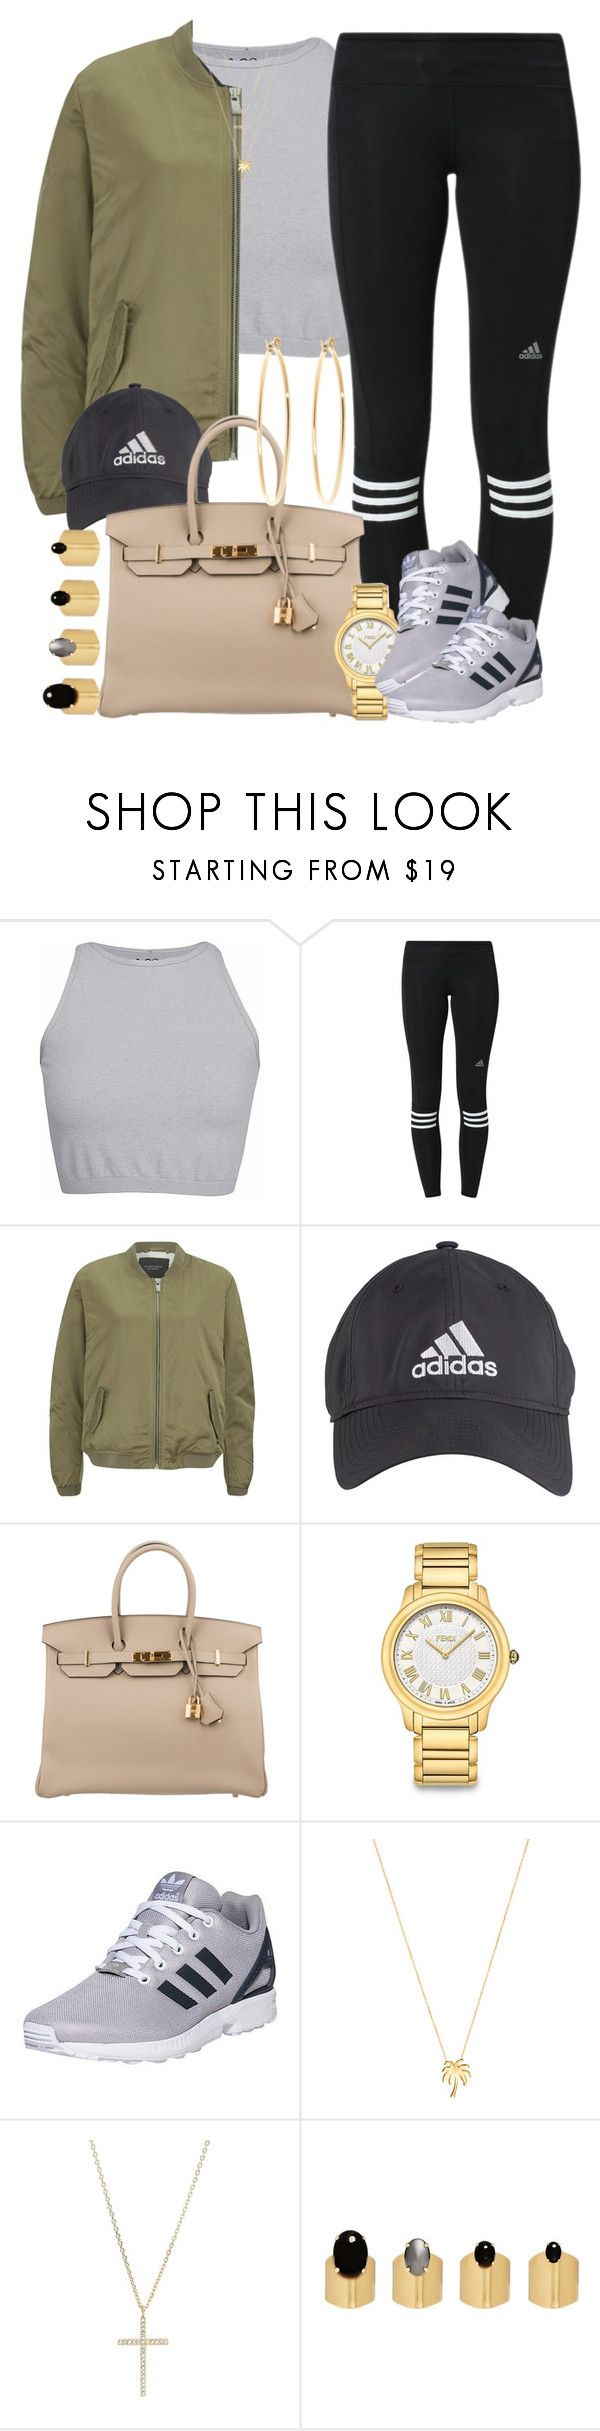 """""""Adidas from her head to her toes """" by livelifefreelyy ❤ liked on Polyvore featuring Free People, adidas, Maison Scotch, Hermès, Fendi, Joolz by Martha Calvo, Michael Kors, Ela Stone, Brooks Brothers and women's clothing"""